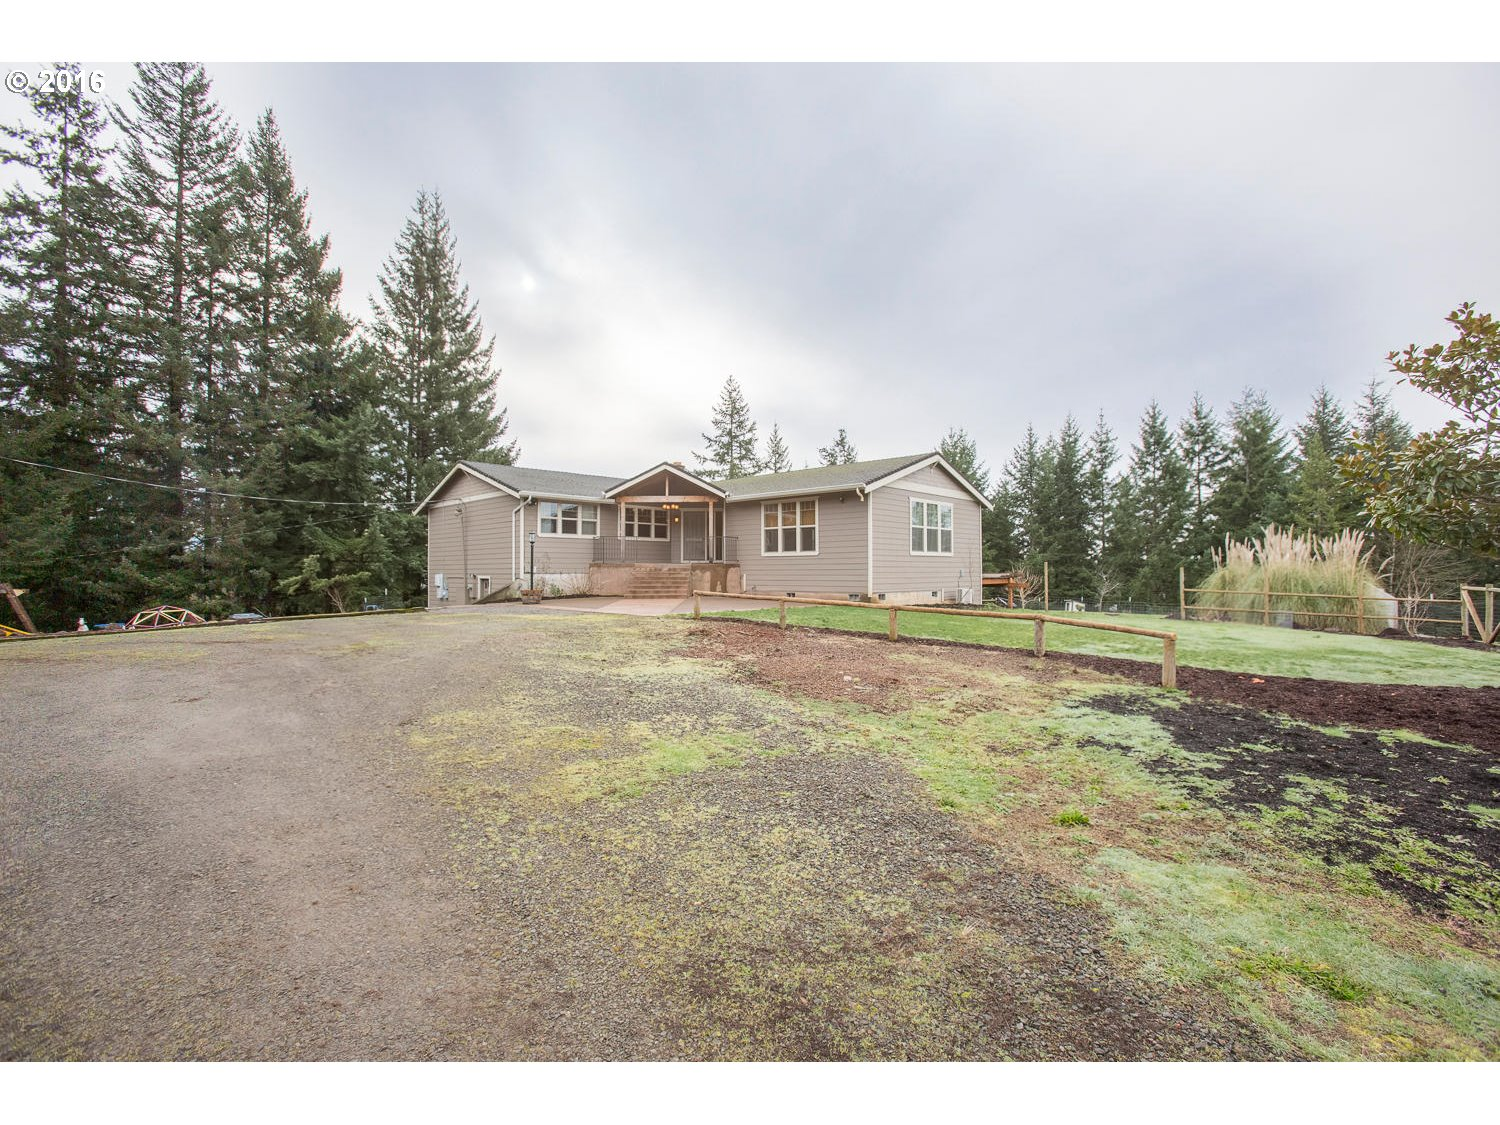 24940 S Newkirchner Rd, Oregon City, OR